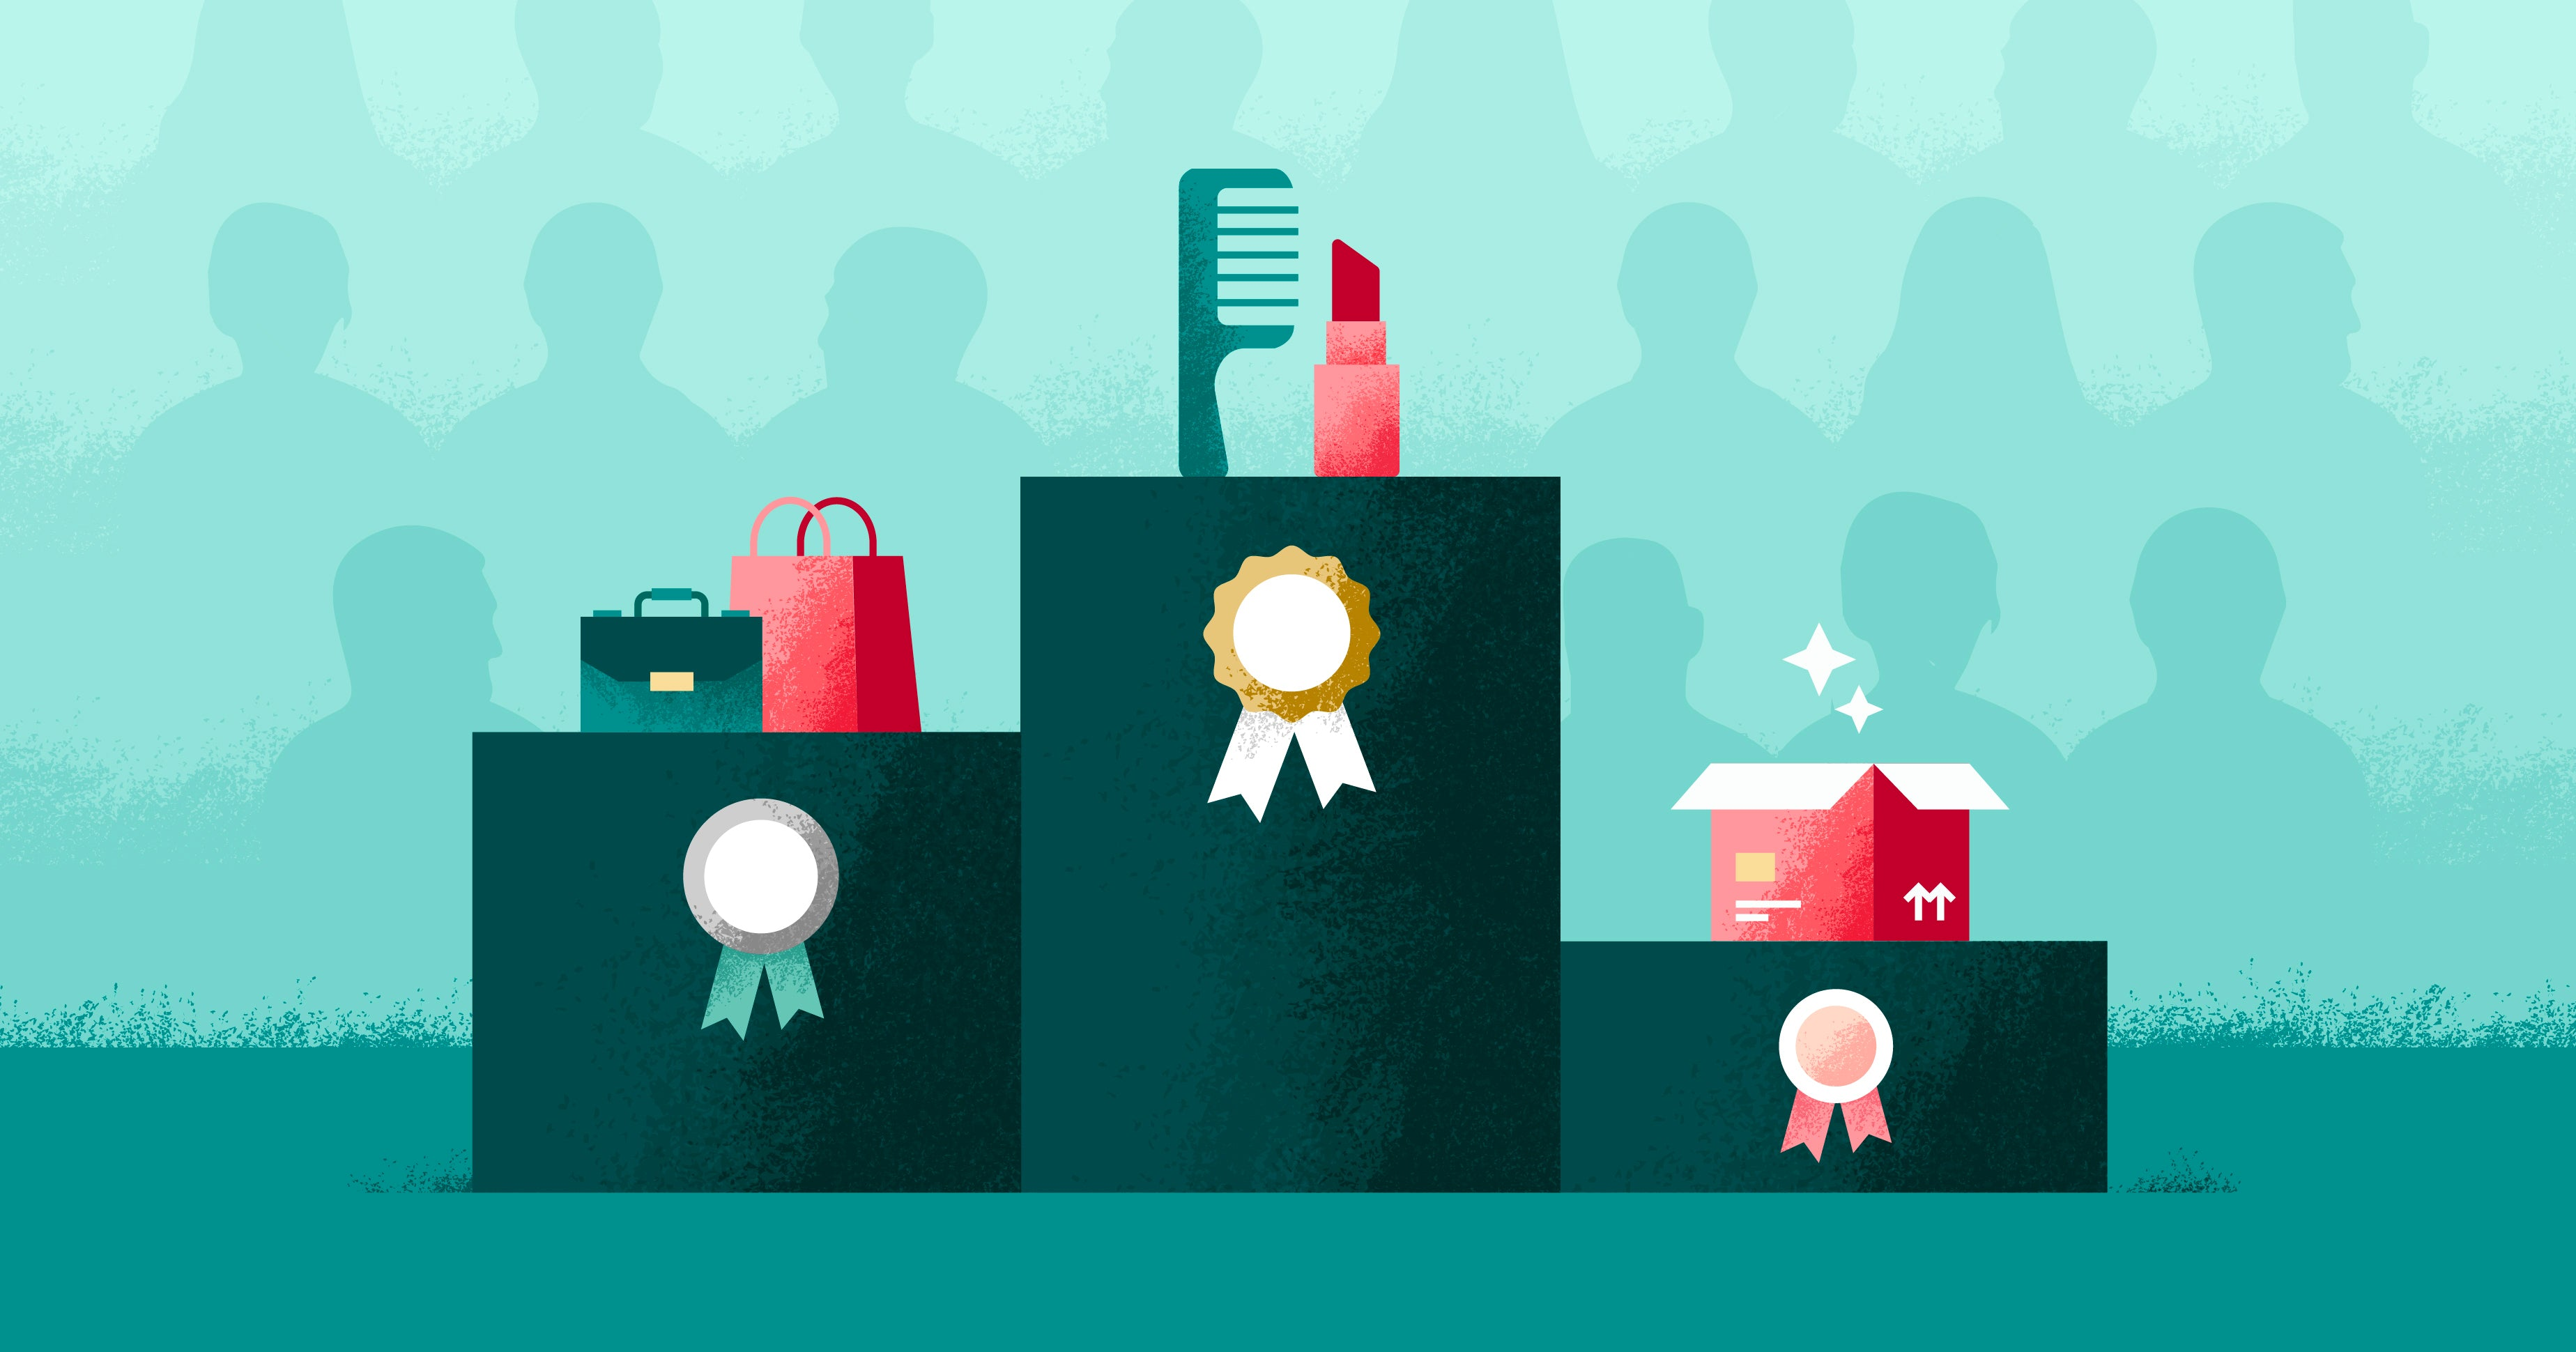 Insight of the Month: 3 Types of Businesses that Thrived in 2020